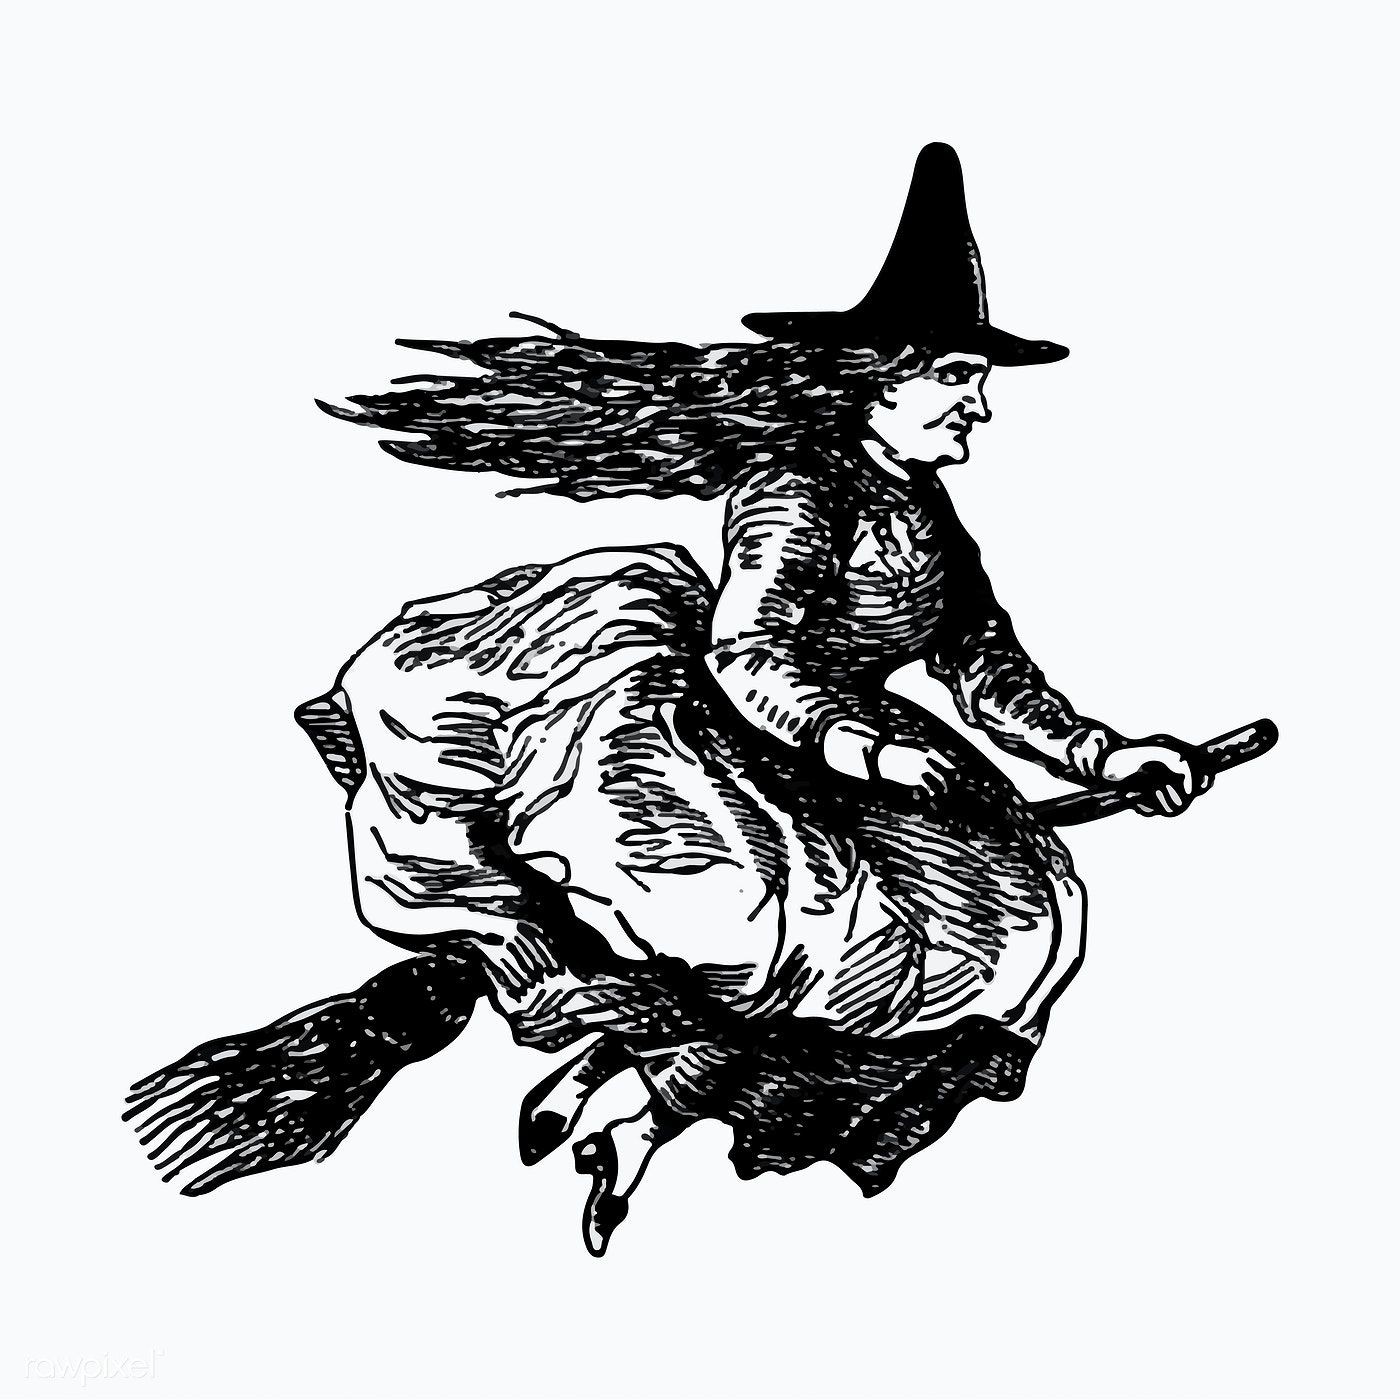 Witch riding a broomstick illustration vector free image